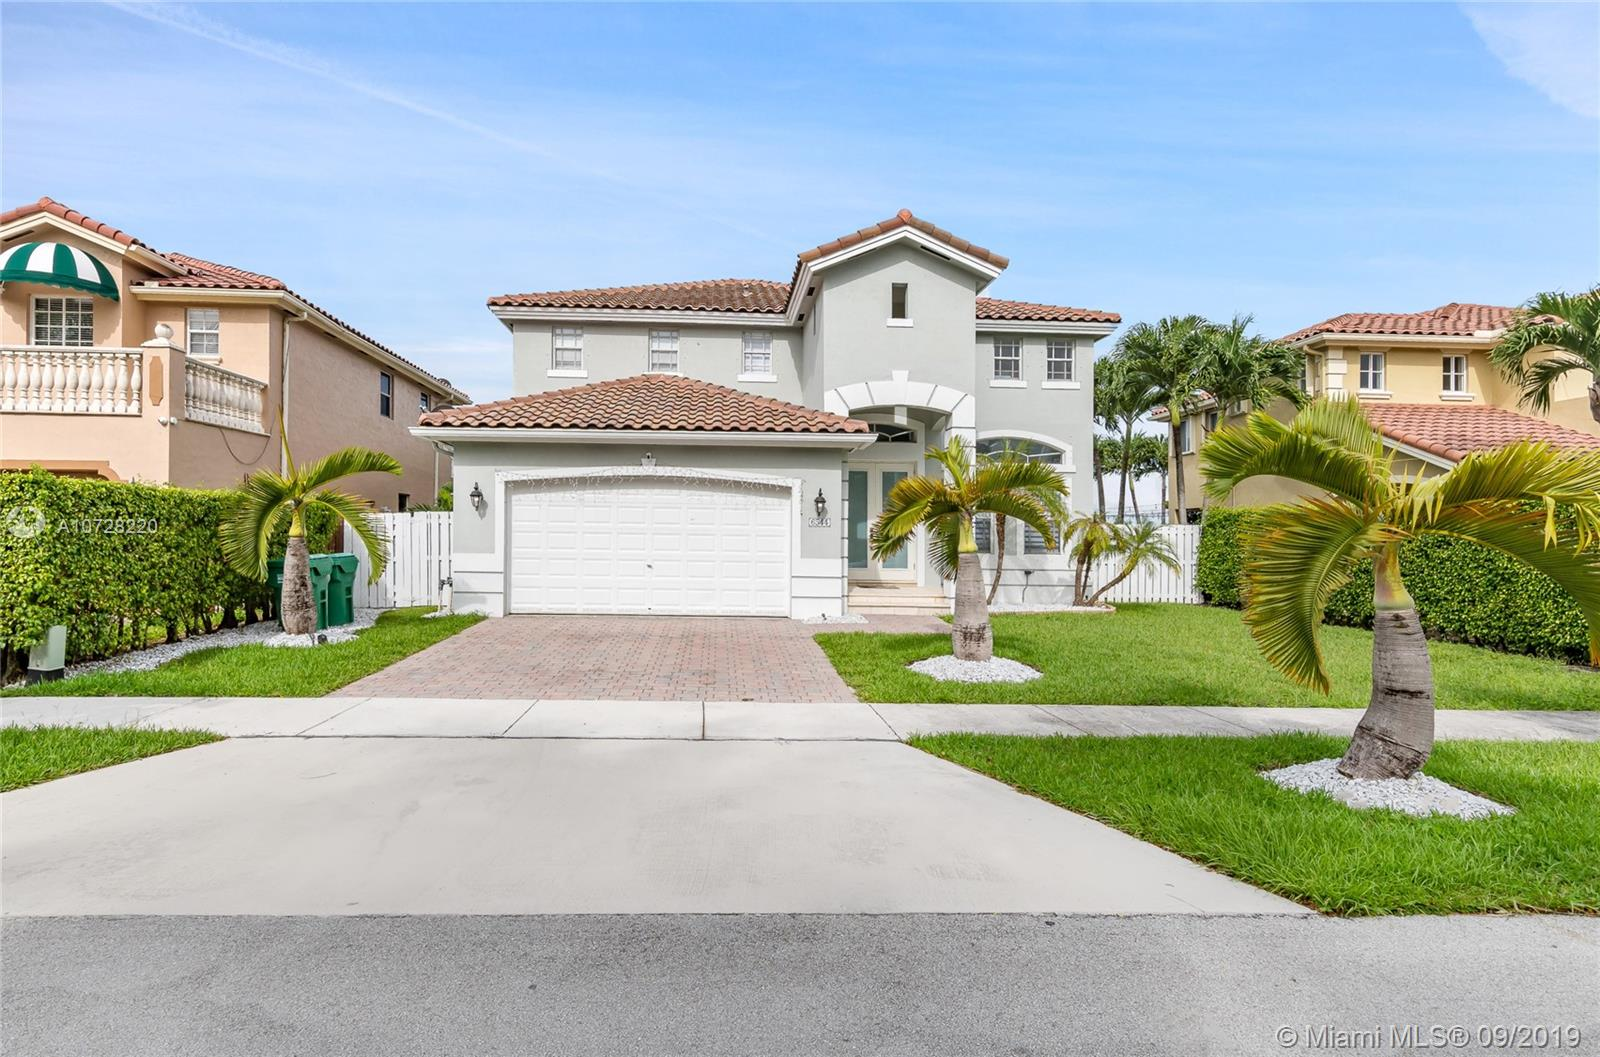 6544 SW 166th Ct, one of homes for sale in Kendall West